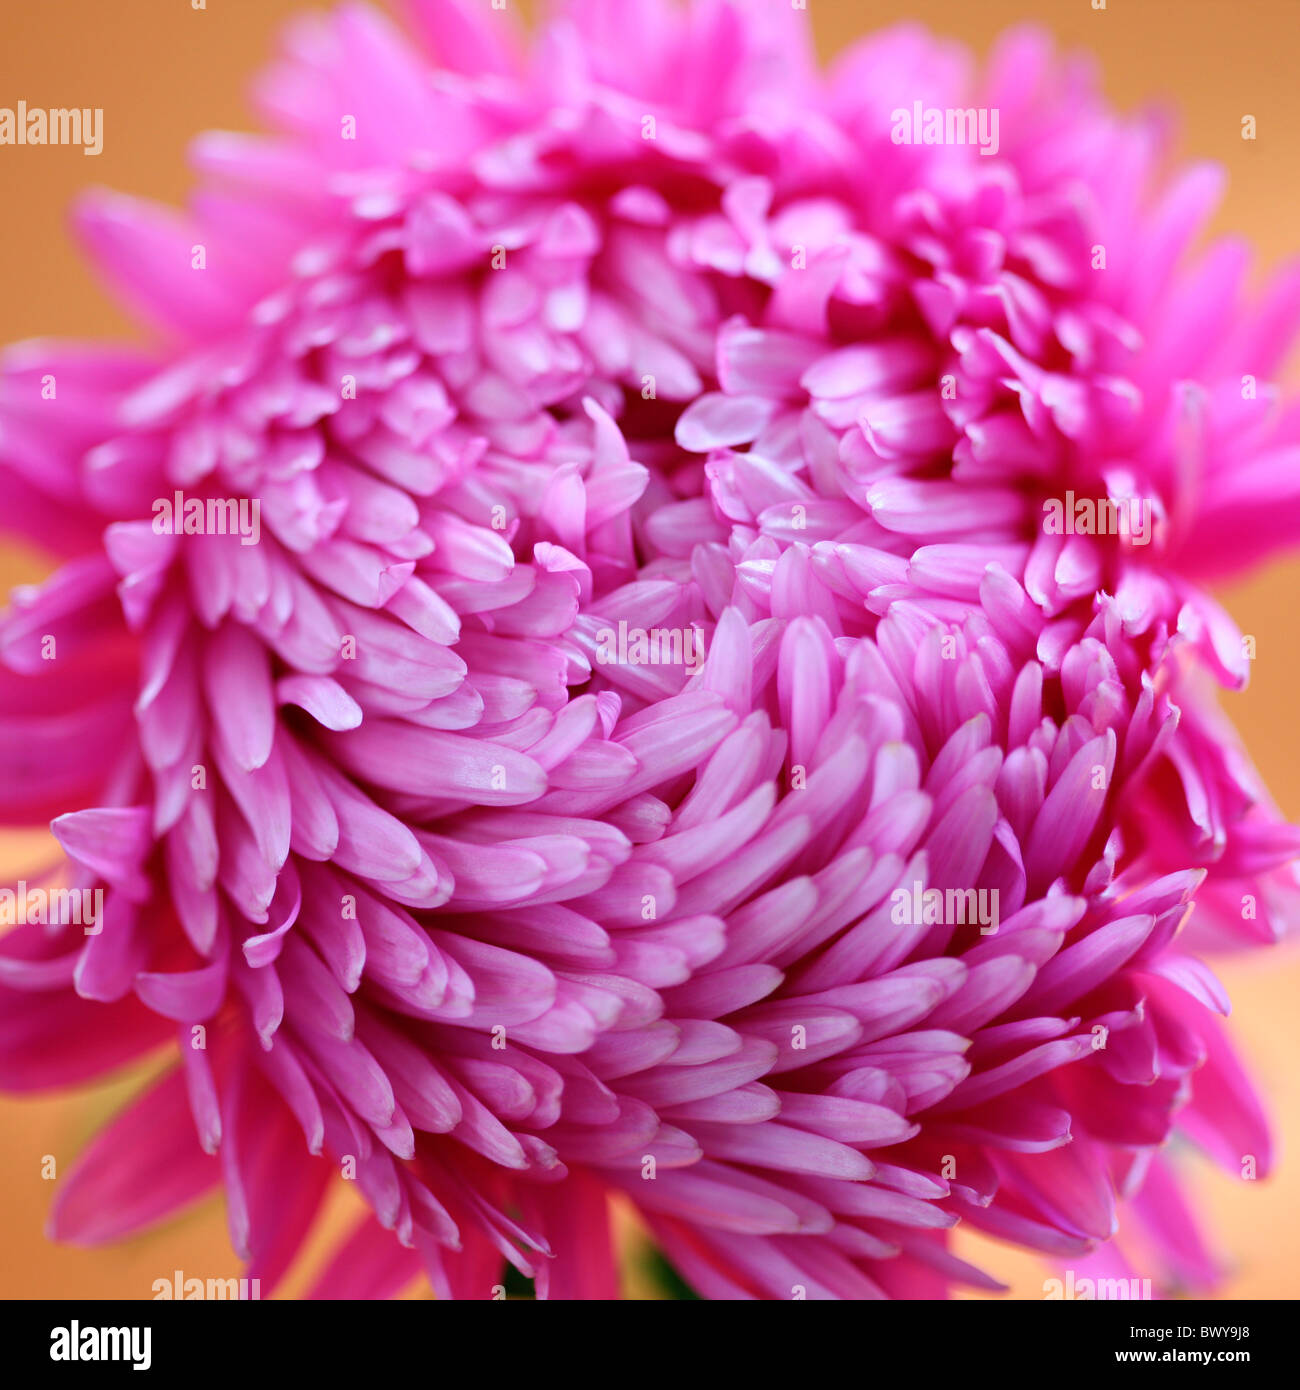 beautifully bright pink aster Jane-Ann Butler Photography JABP869 - Stock Image